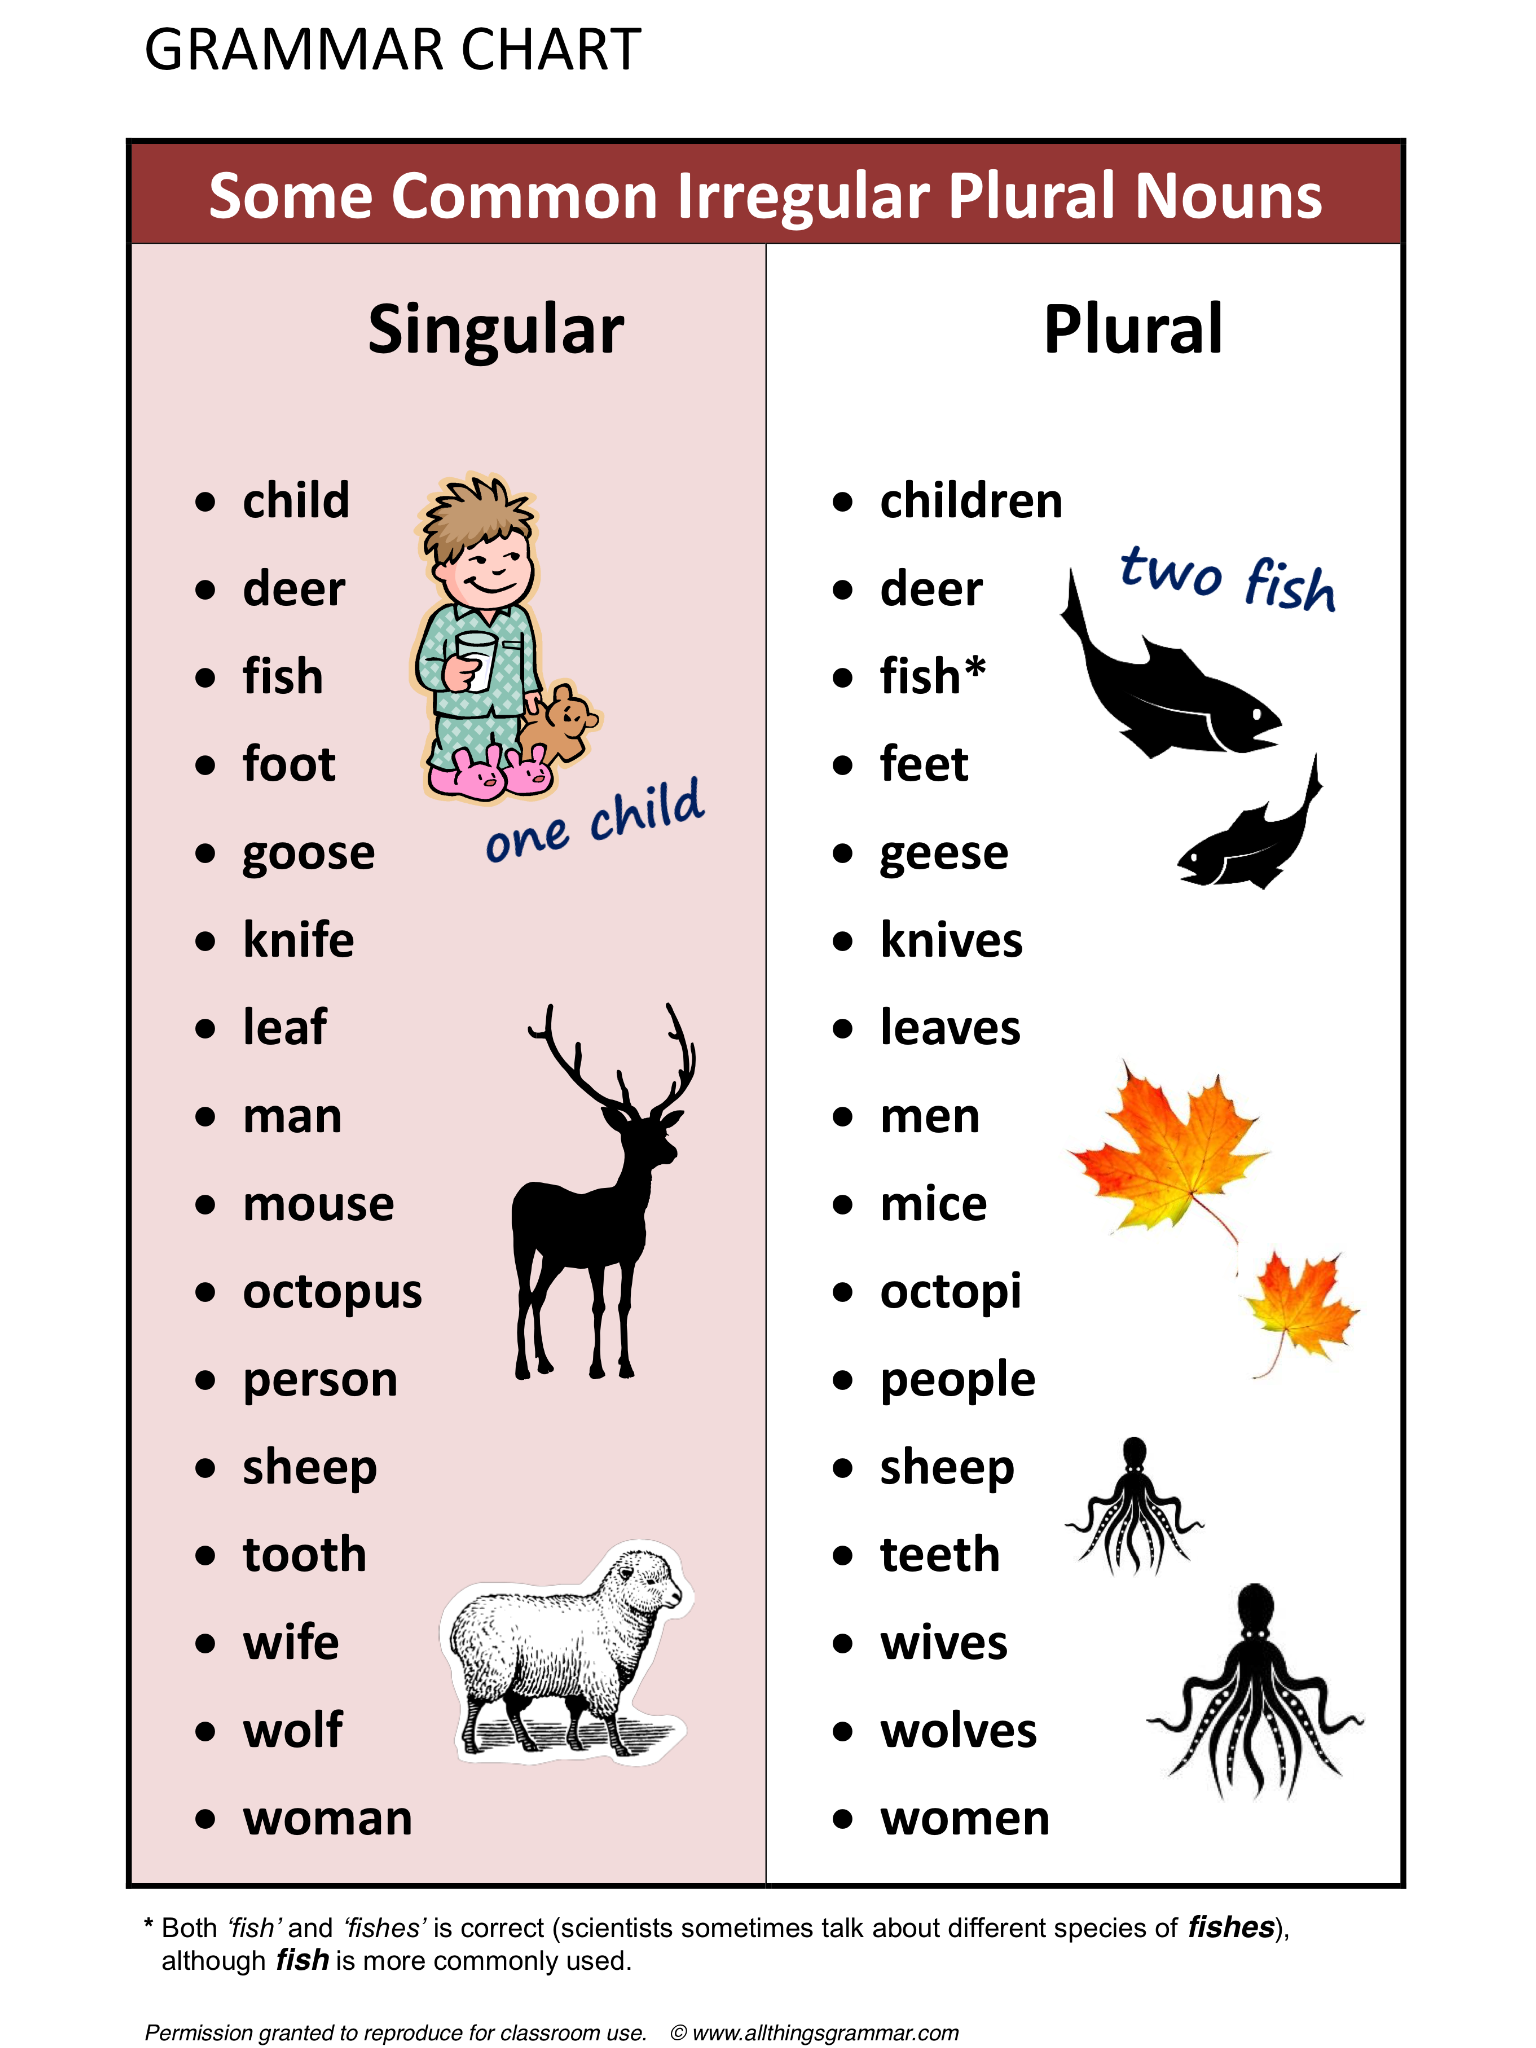 Forum | . | Fluent LandSome Common Irregular Plural Nouns | Fluent ...